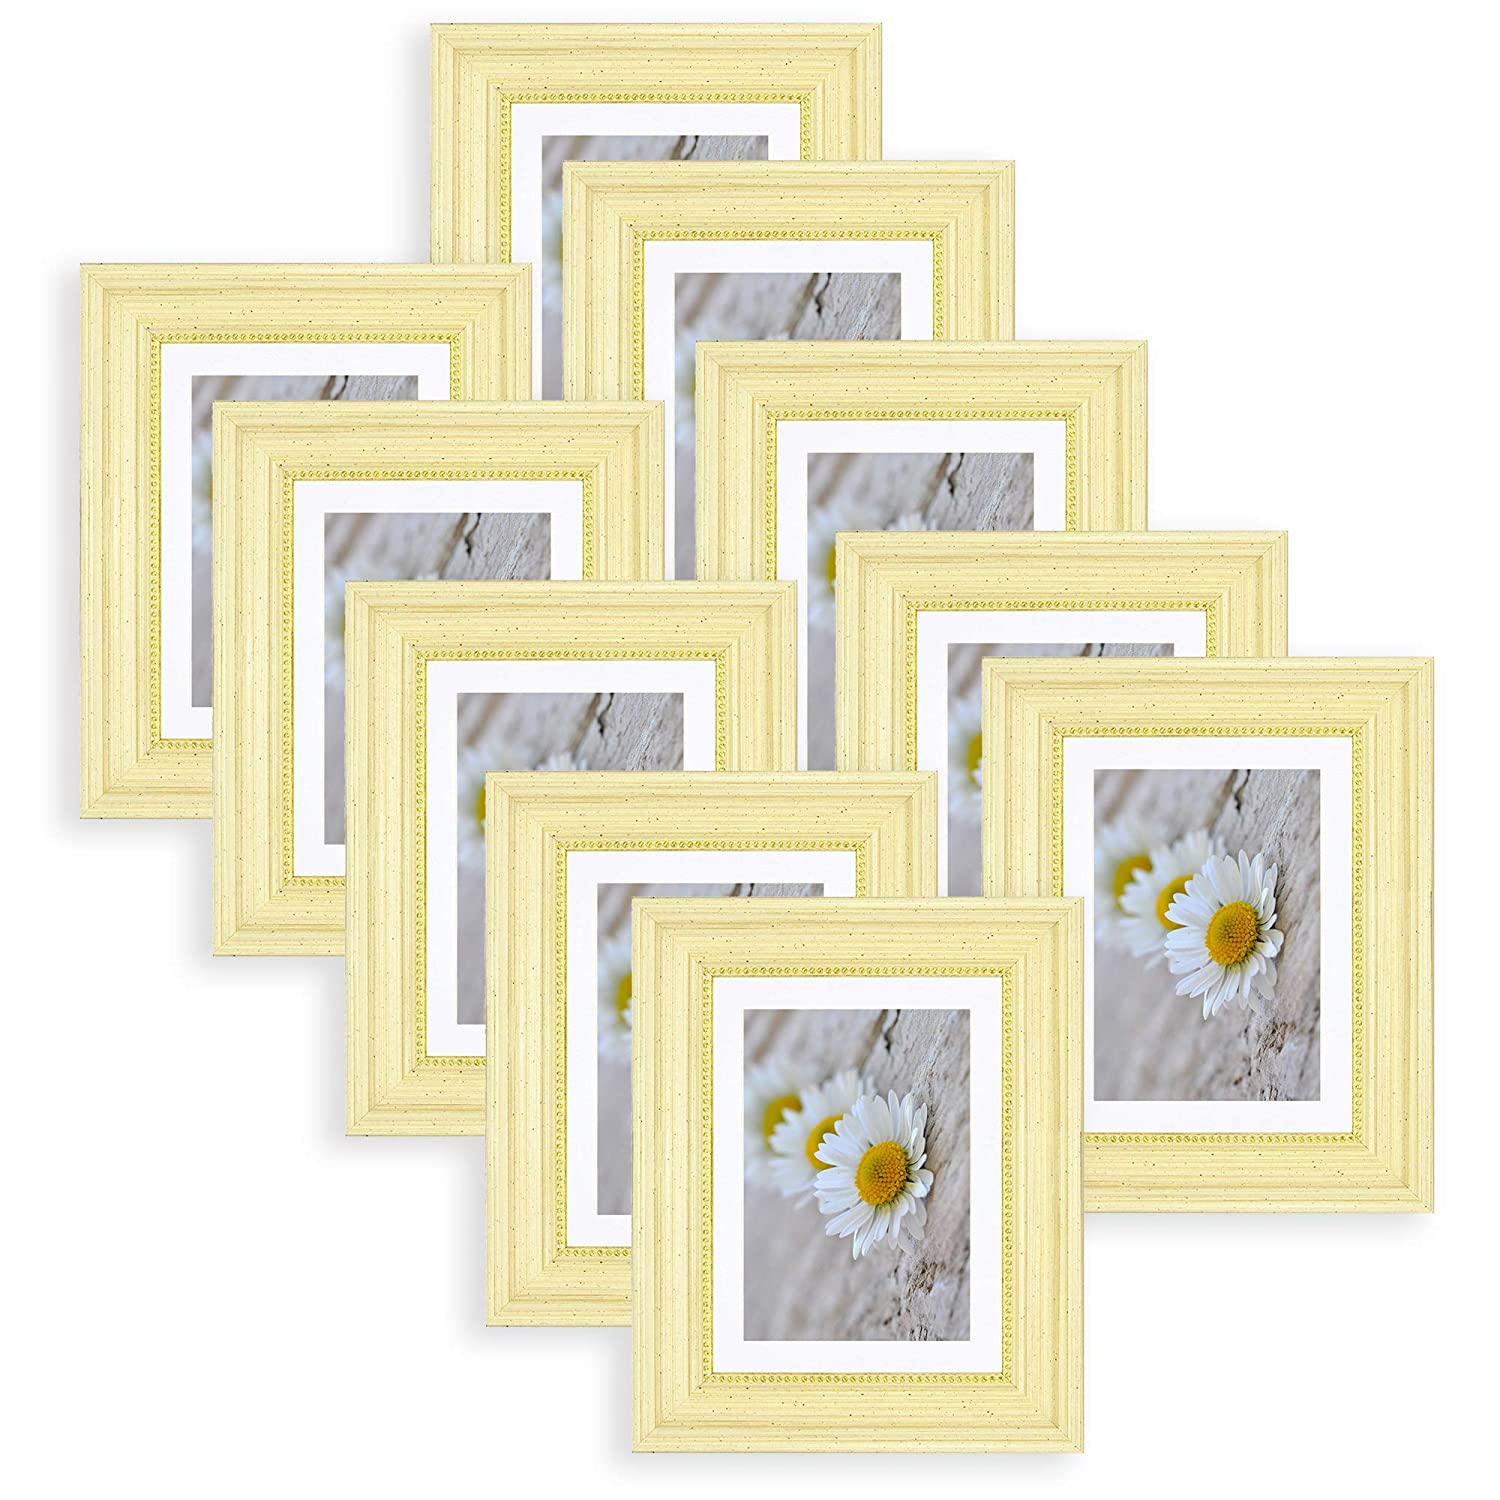 5x7 Frame for 4x6 Photo with White Mat Table-Top Easel Stand Set of 10 Golden State Art Real Glass 10 Sonora Cream - Vertical + Horizontal